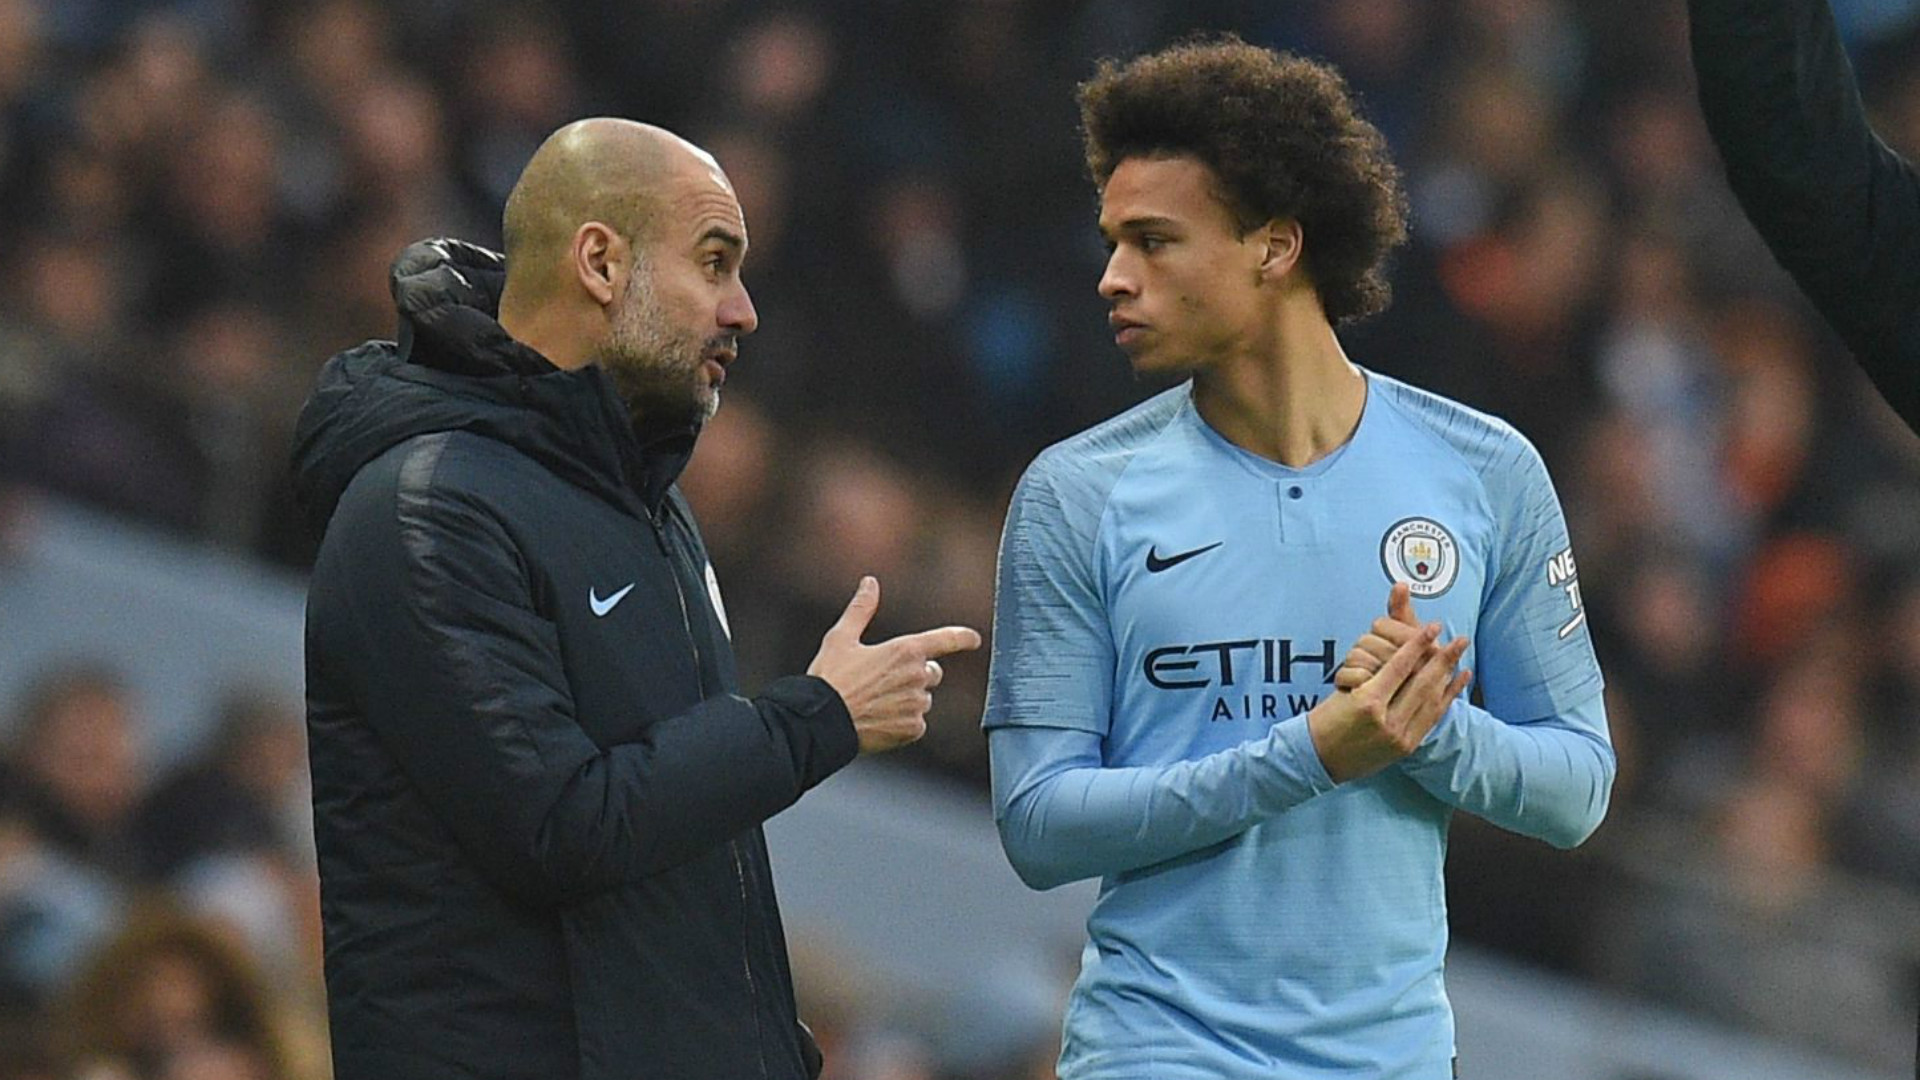 Man City boss Guardiola: Sane knows why he's not playing